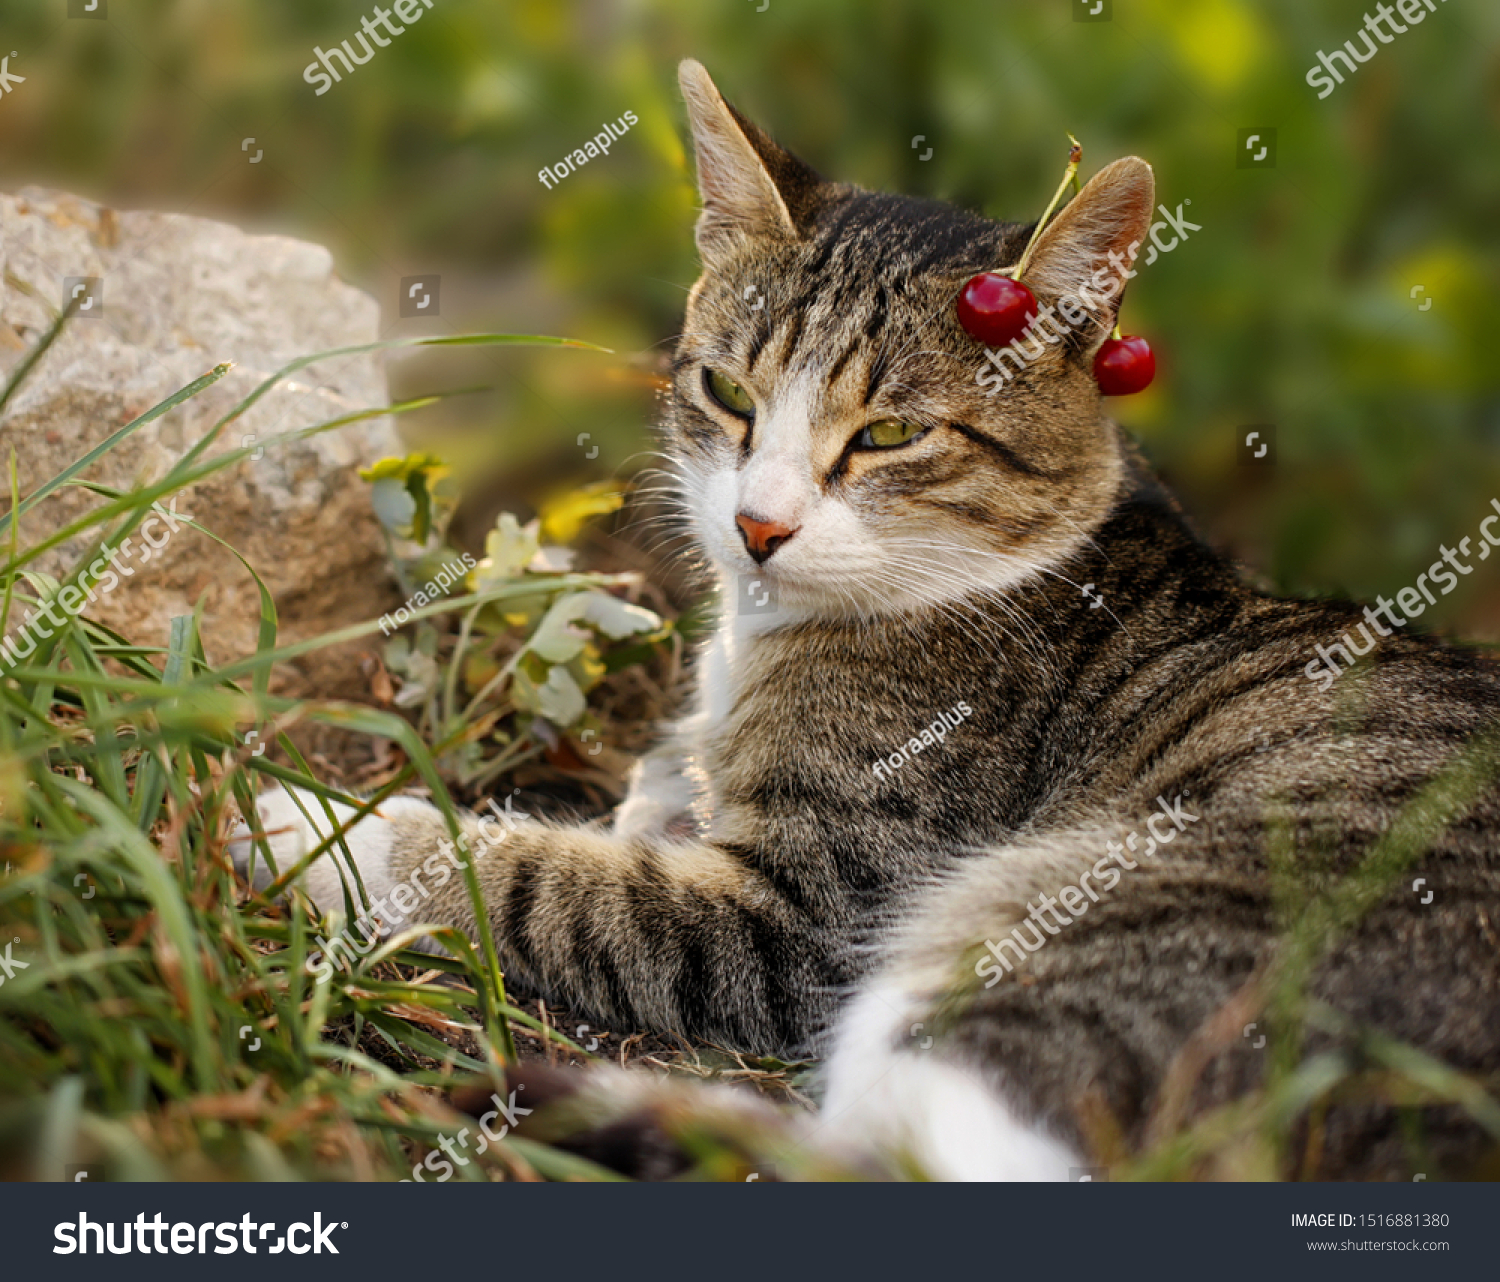 A grey striped cat, with green eyes and cherries on his ear, resting in the grass. Warm summer garden scene with pet.